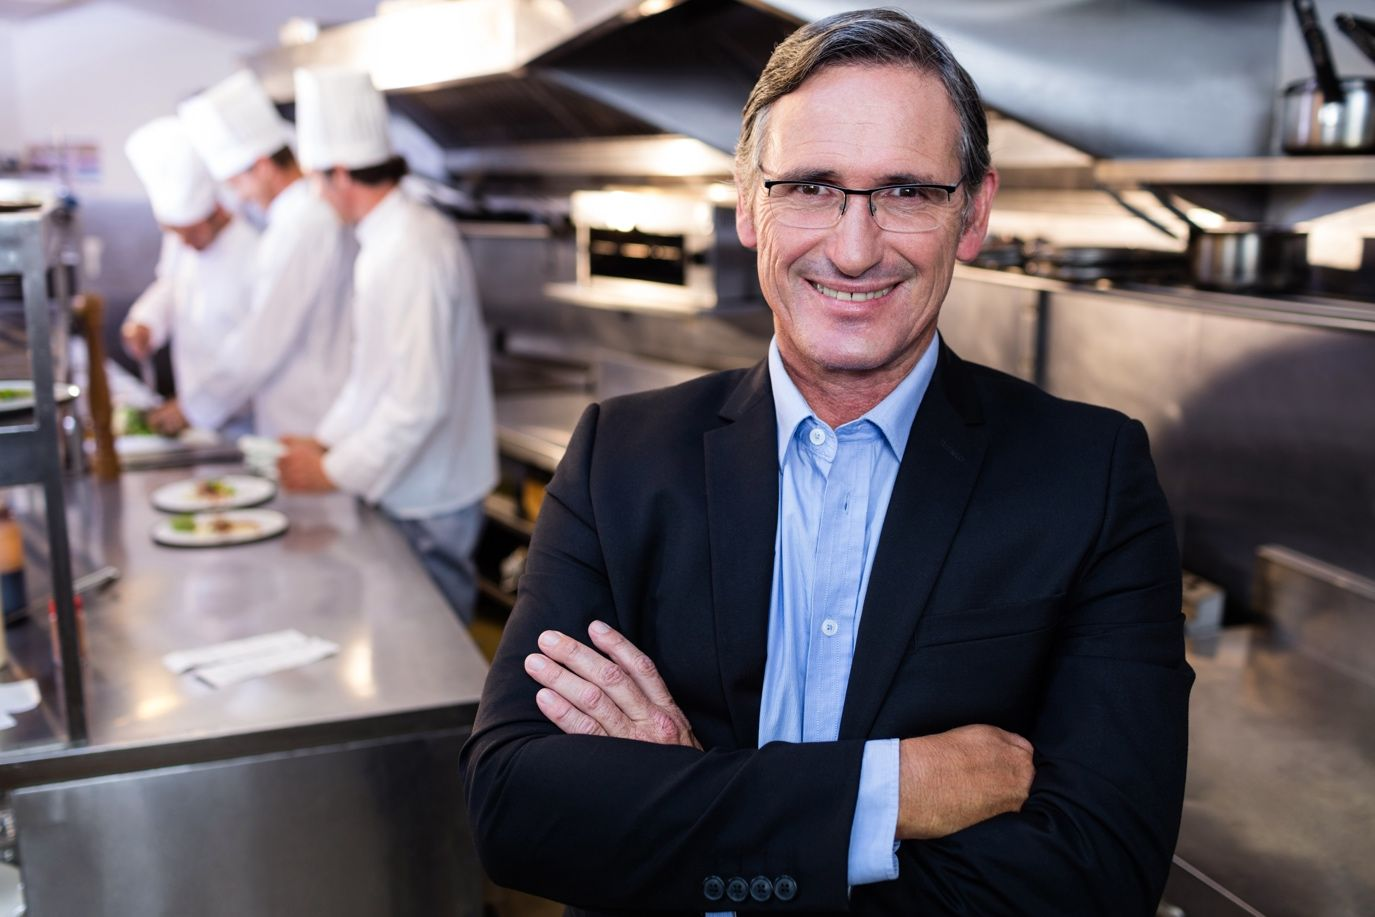 MEPS and the professional kitchen